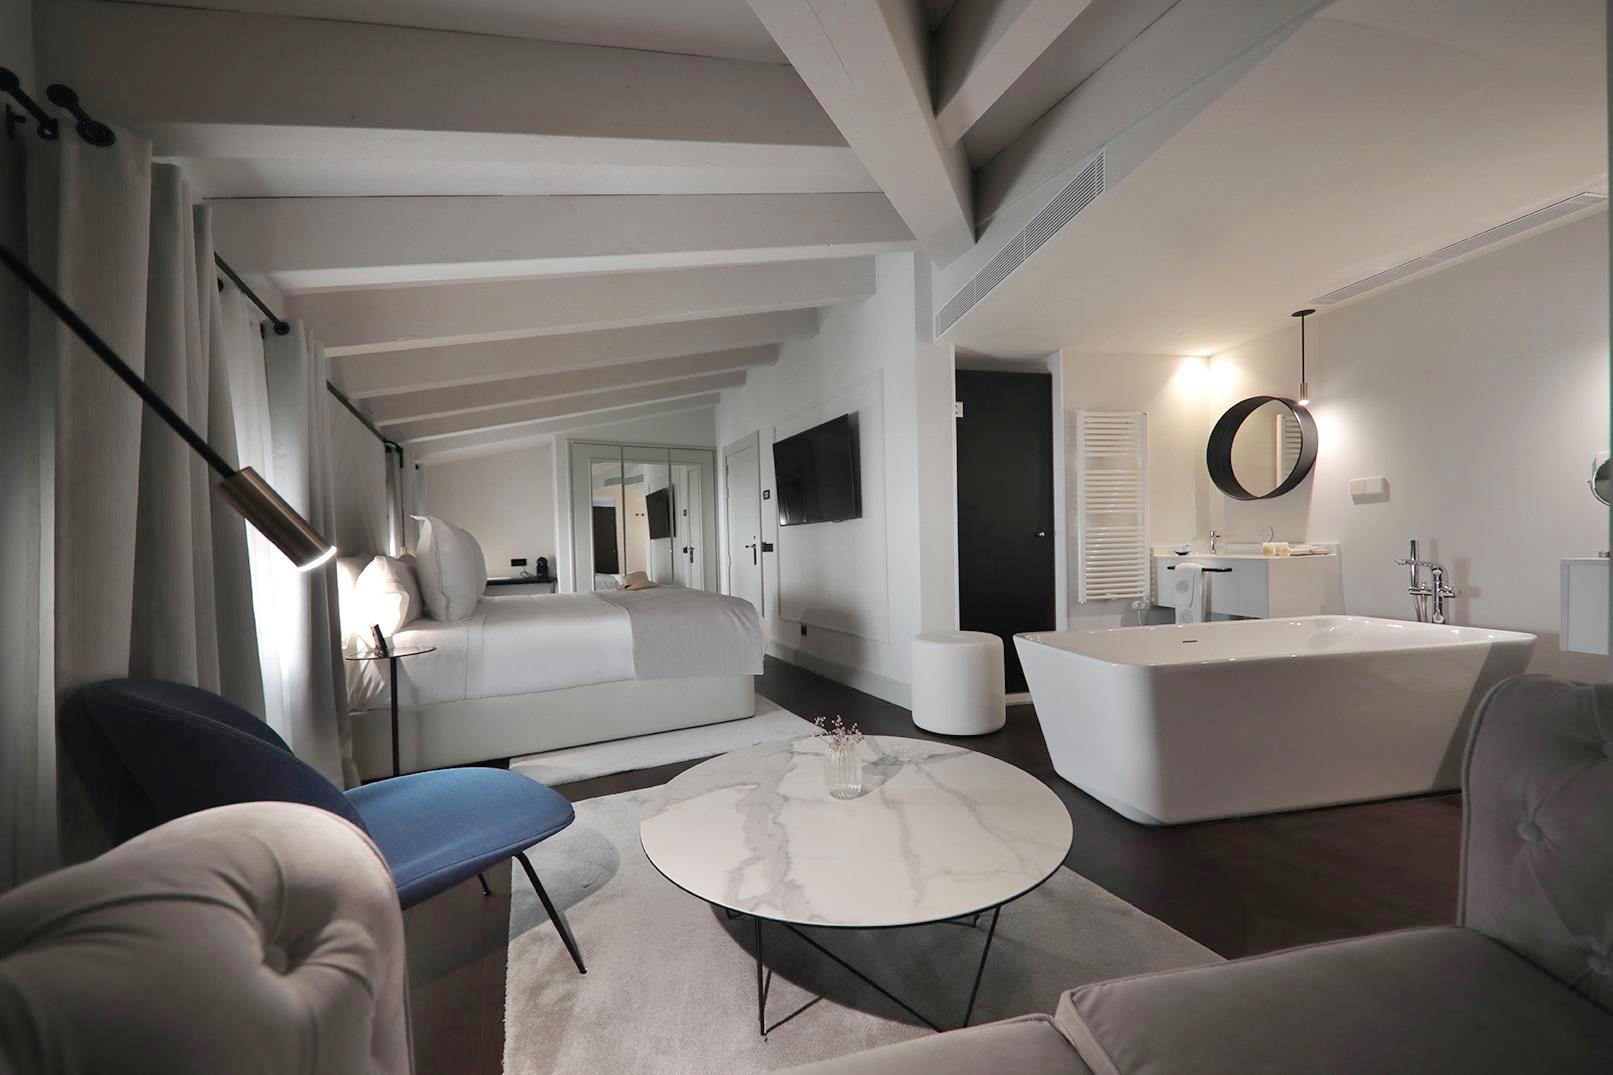 Huge rooms at Summum Prime Boutique Hotel - Palma - Mallorca